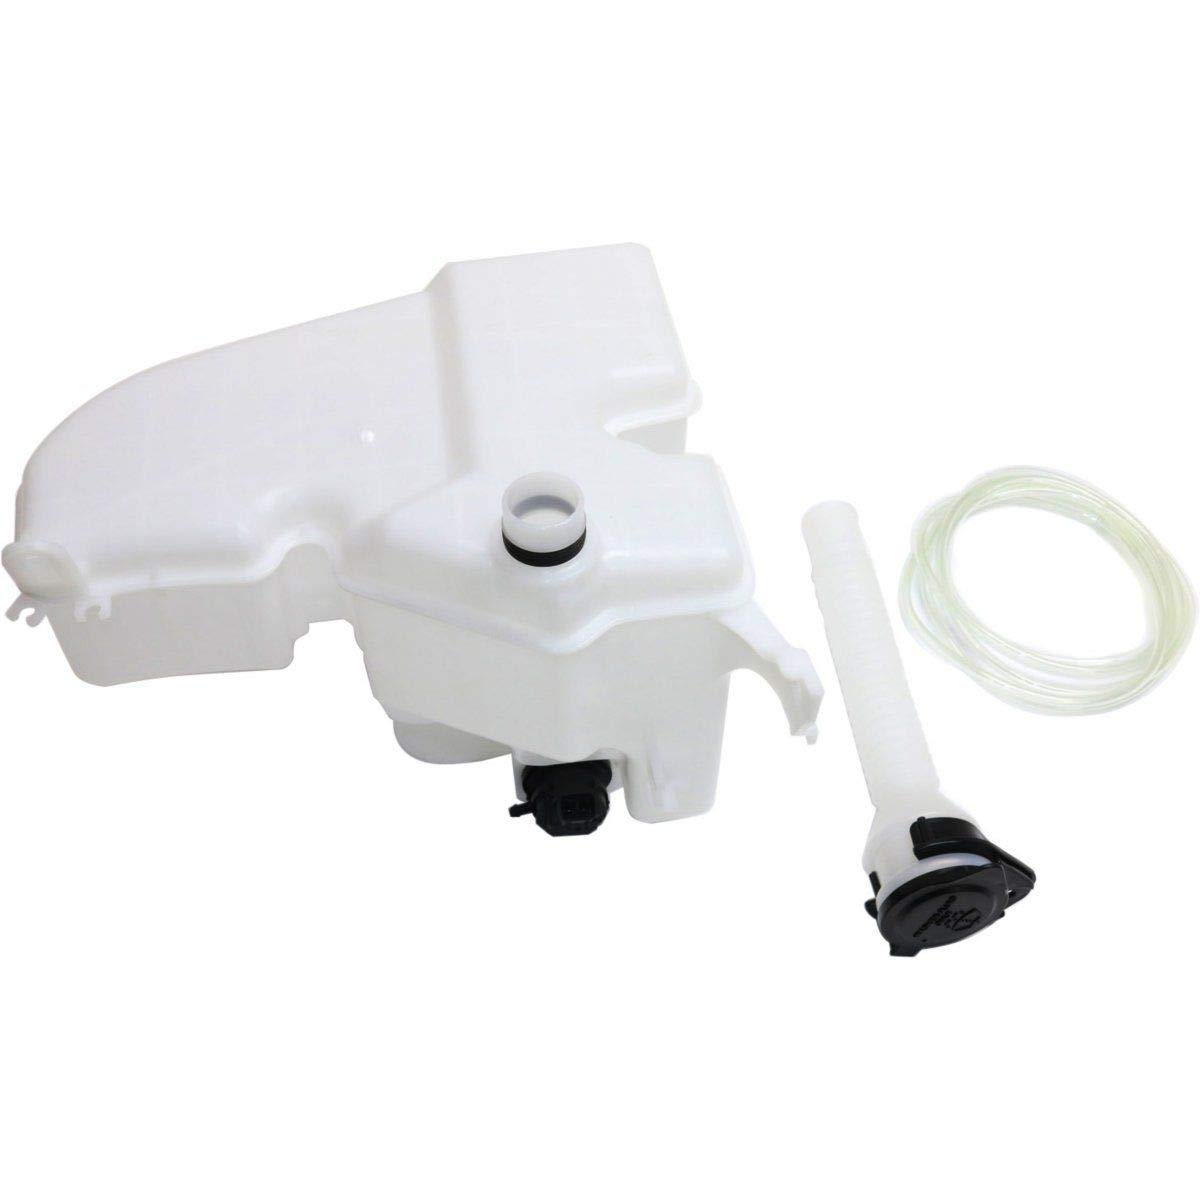 New Washer Fluid Reservoir For 2006-2011 GS300/GS460 & 2006-2015 IS250/IS350 With Sensor/Pump/Inlet For Models With Headlight Washers LX1288109 8535530040 Fitrite Autoparts